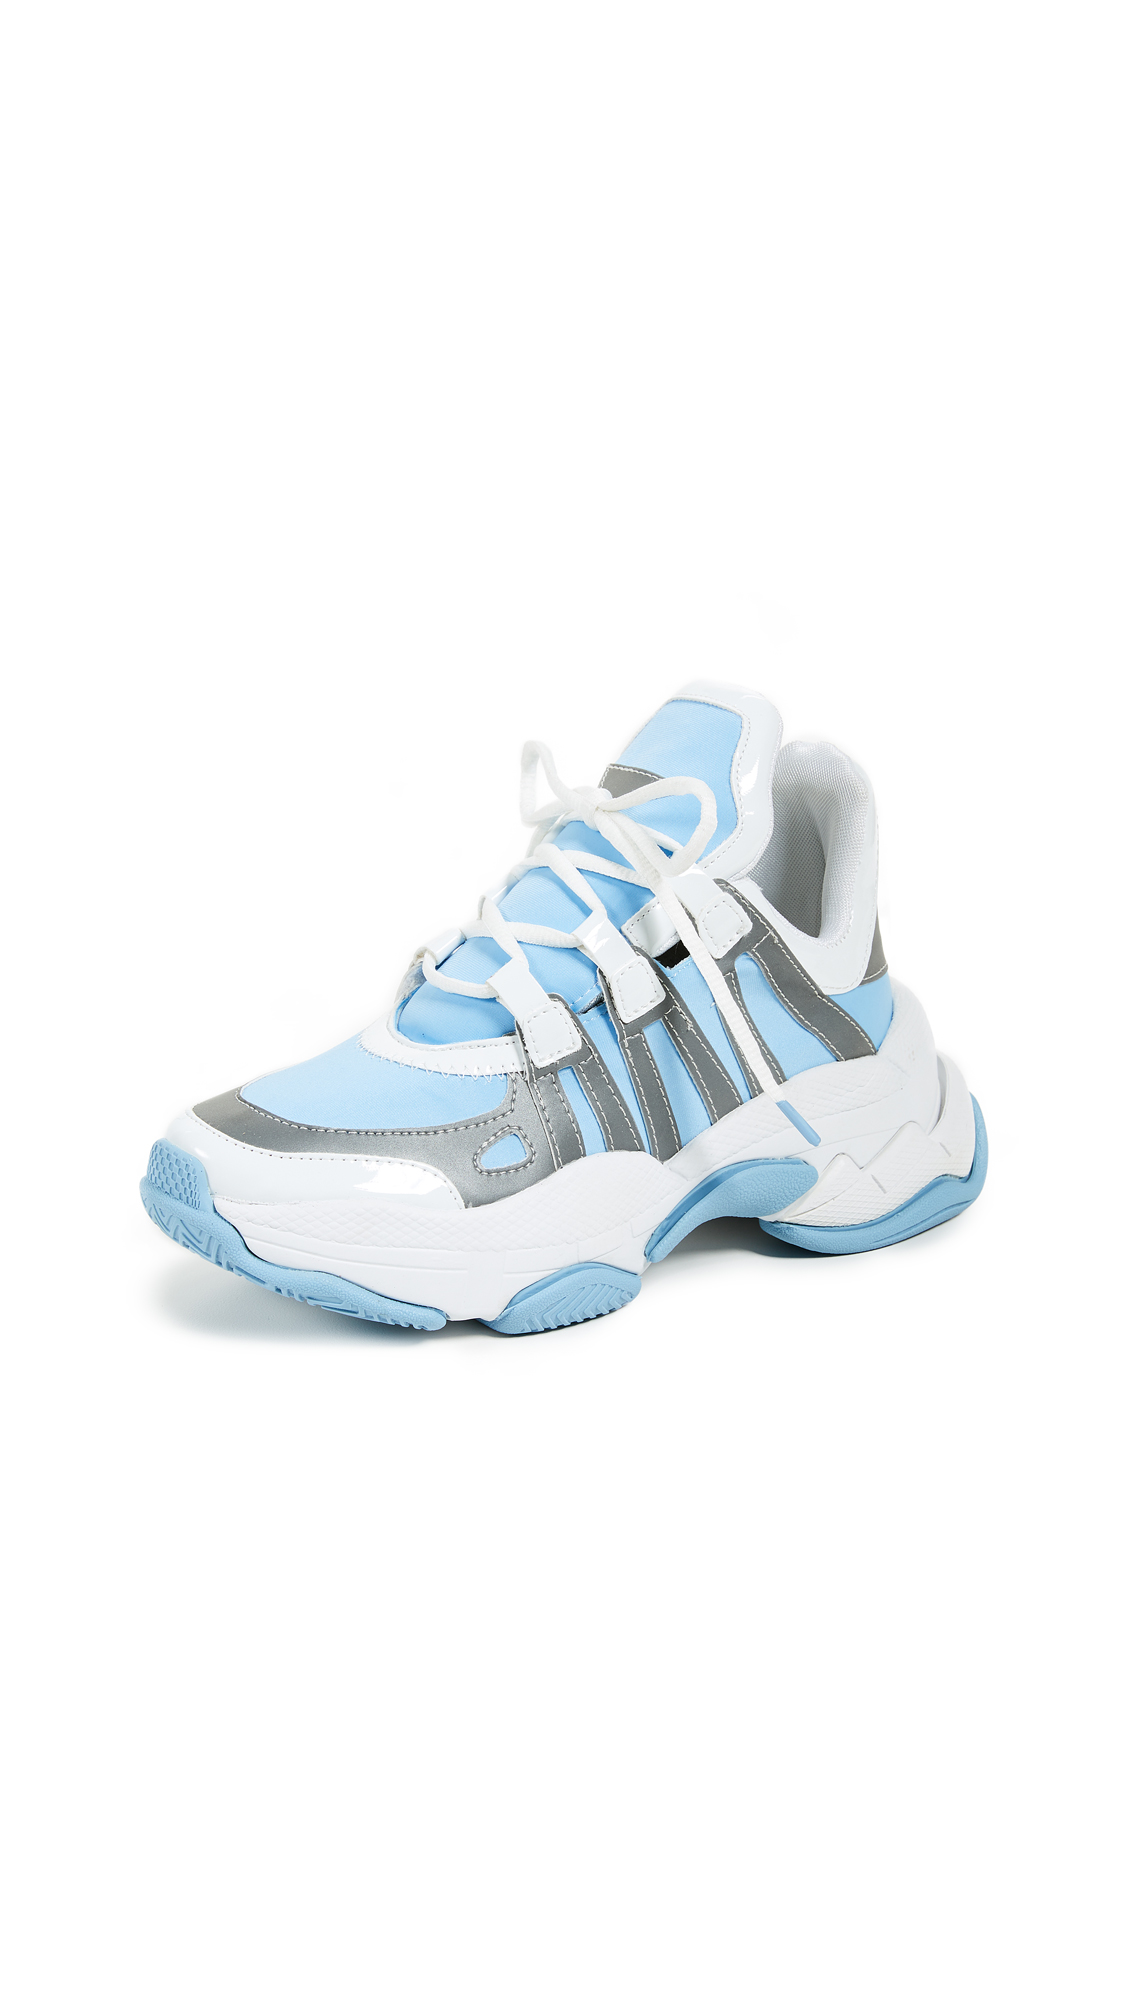 Jeffrey Campbell Wifi Trainers - Baby Blue